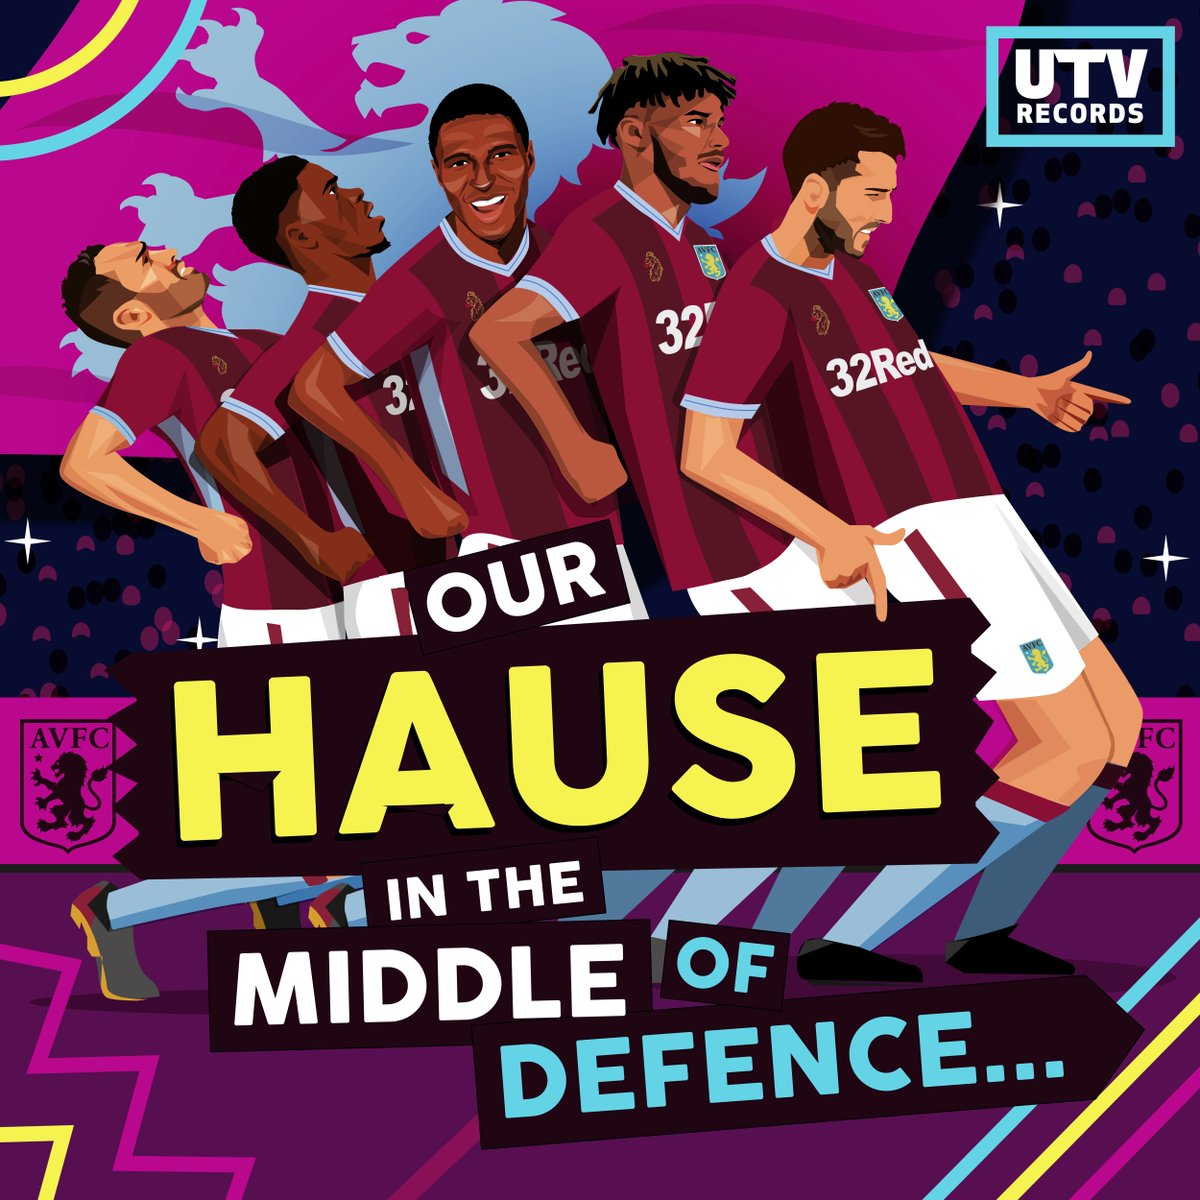 """""""I love the chant. It gives me a boost and extra motivation!""""   He may not have been involved too much of late as he's battled back to fitness, but in the latest look at musical tributes this season, @Kortney_30 thanks YOU for making him feel at home!  #PartOfThePride #AVFC<br>http://pic.twitter.com/rvq5Rt4q5V"""